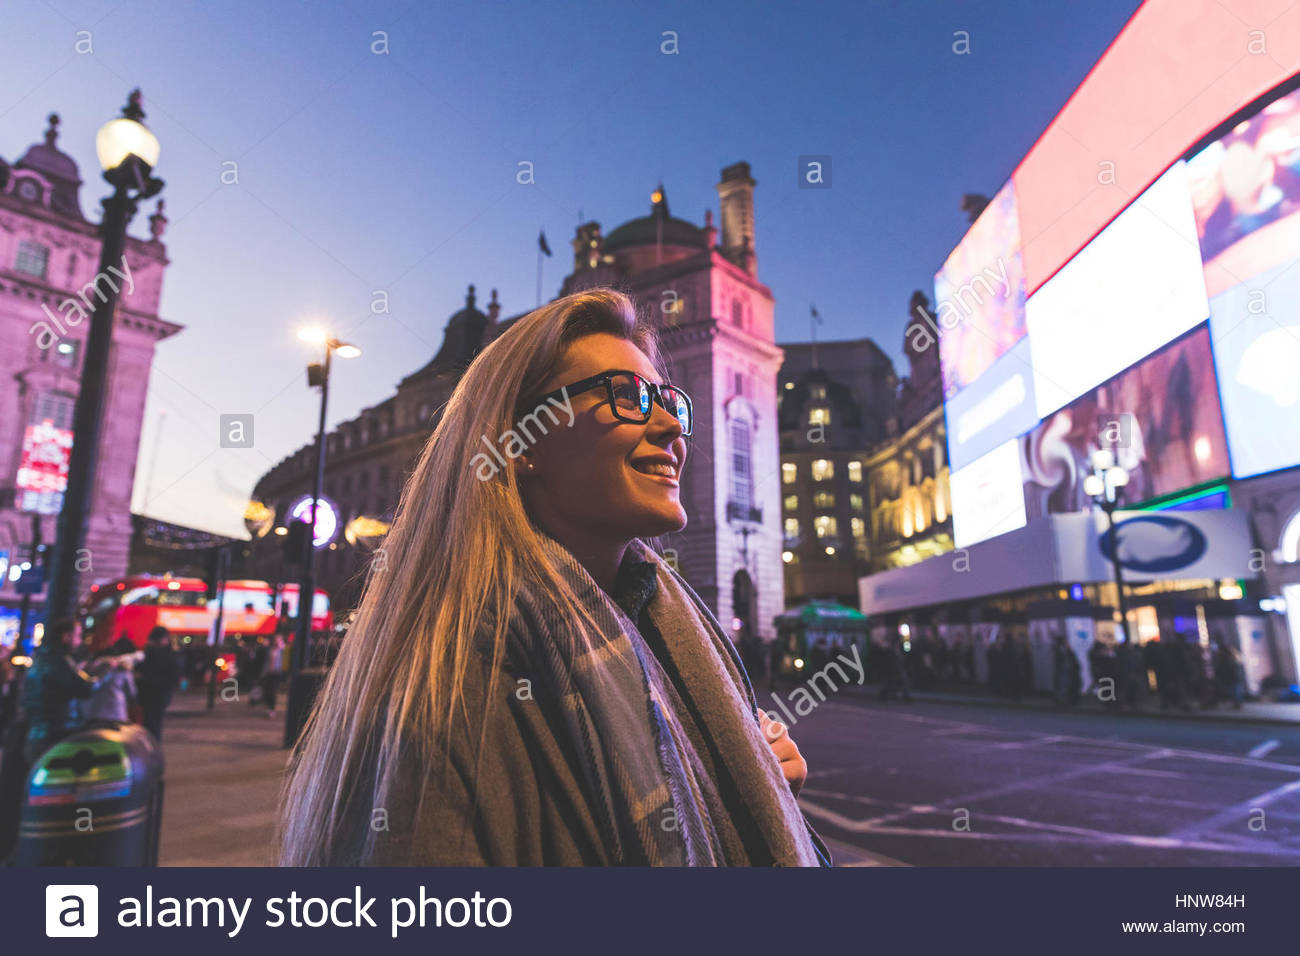 Young woman exploring city at dusk - Stock Image